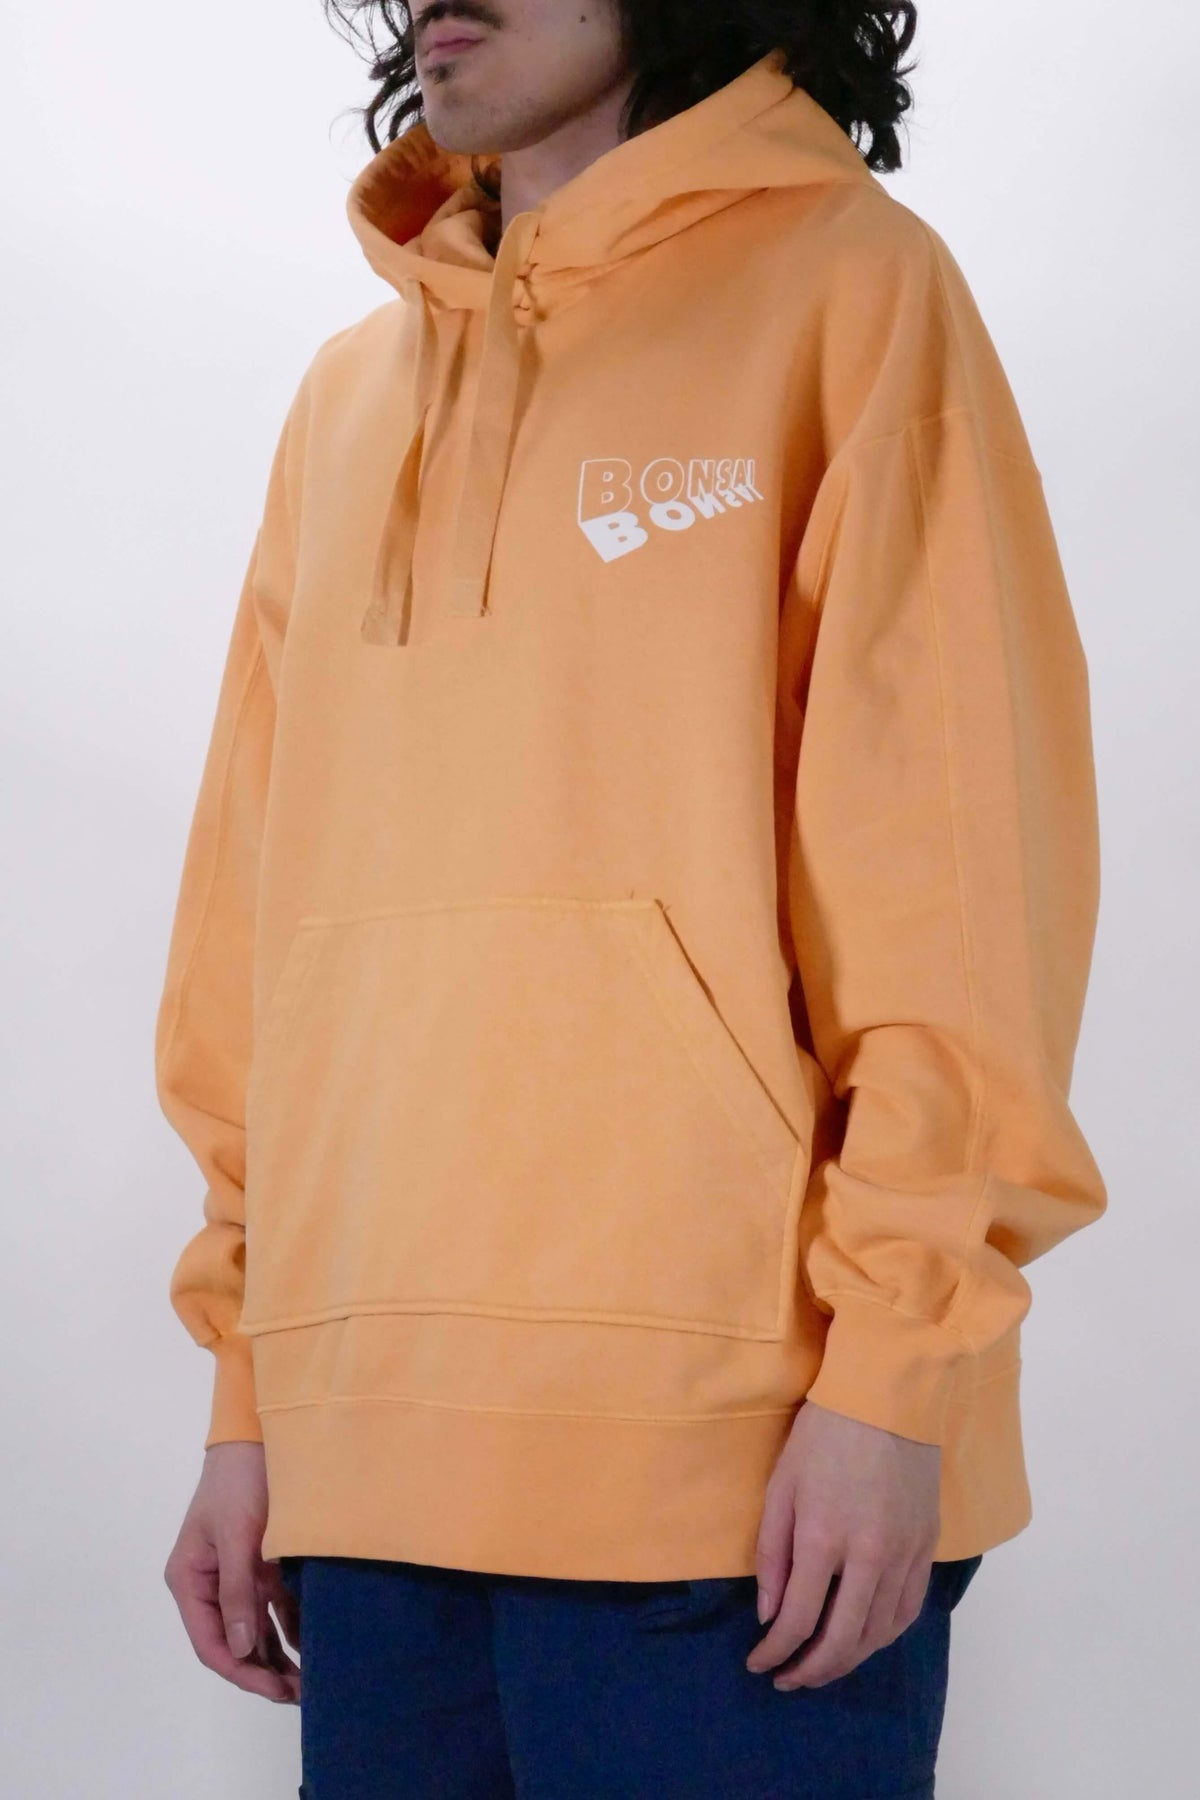 Bonsai Graphic Hoodie - Orange